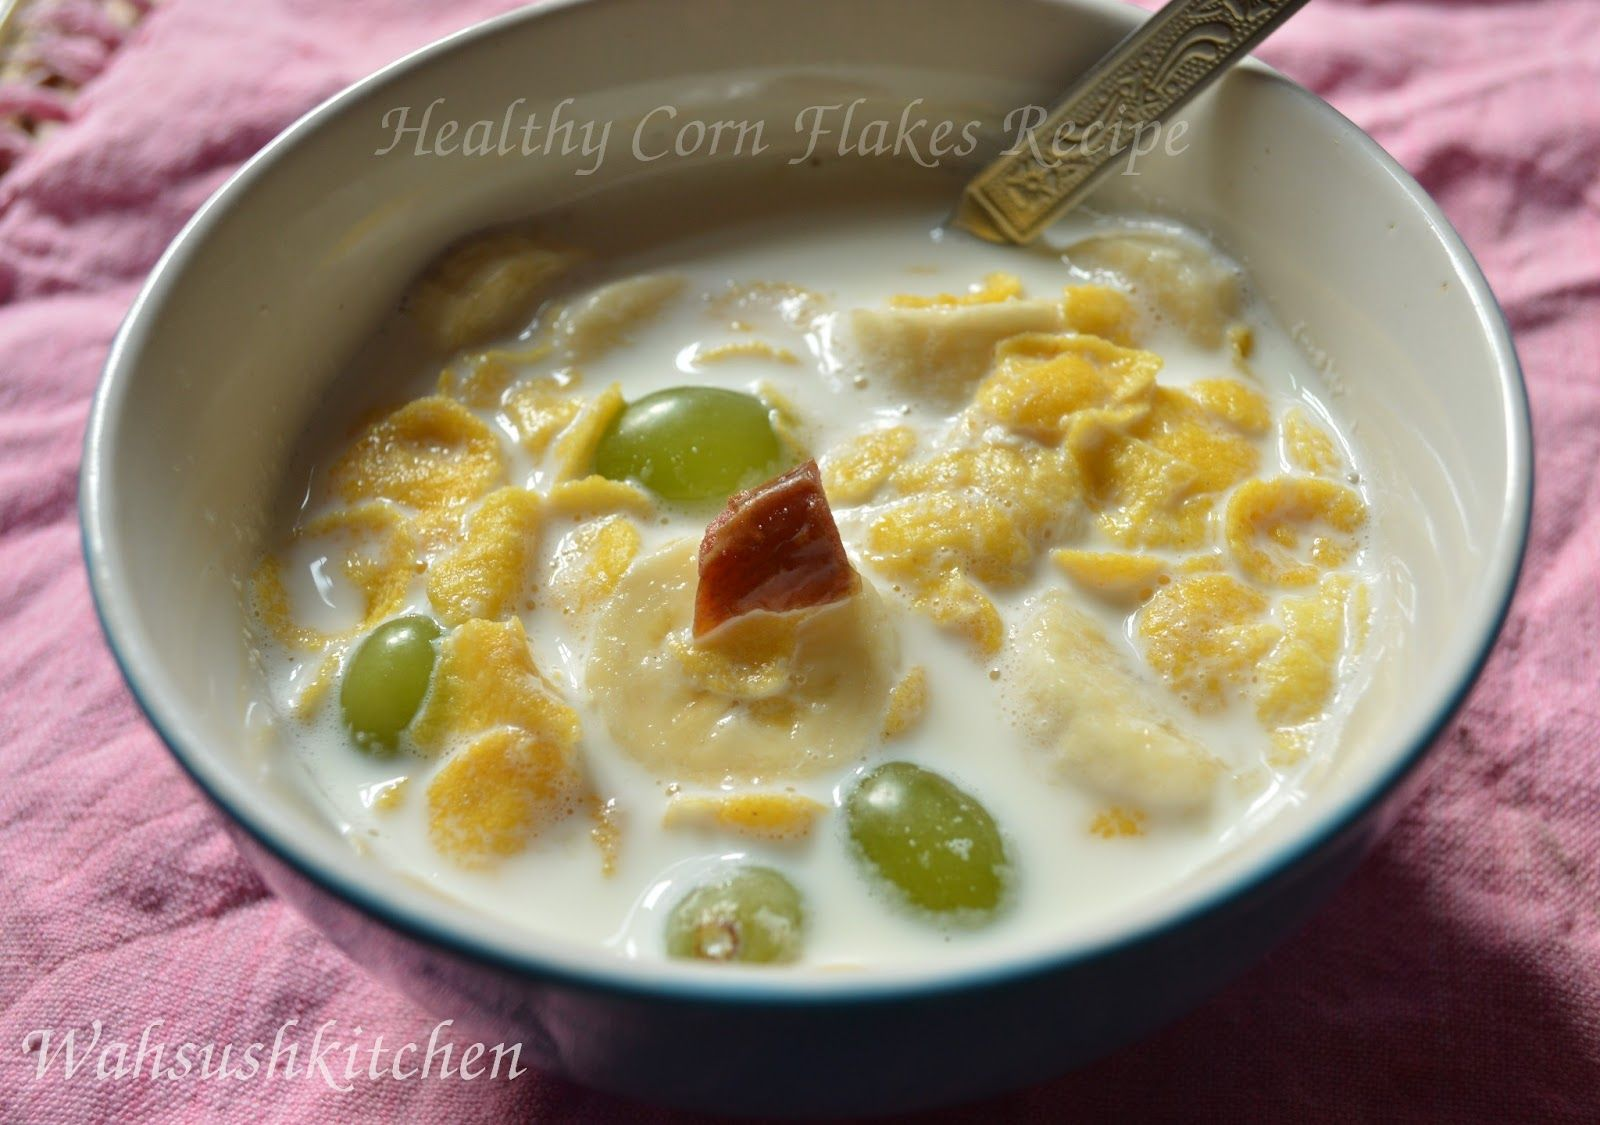 Milk Fruits And Corn Flakes Healthy Breakfast Recipe Series With